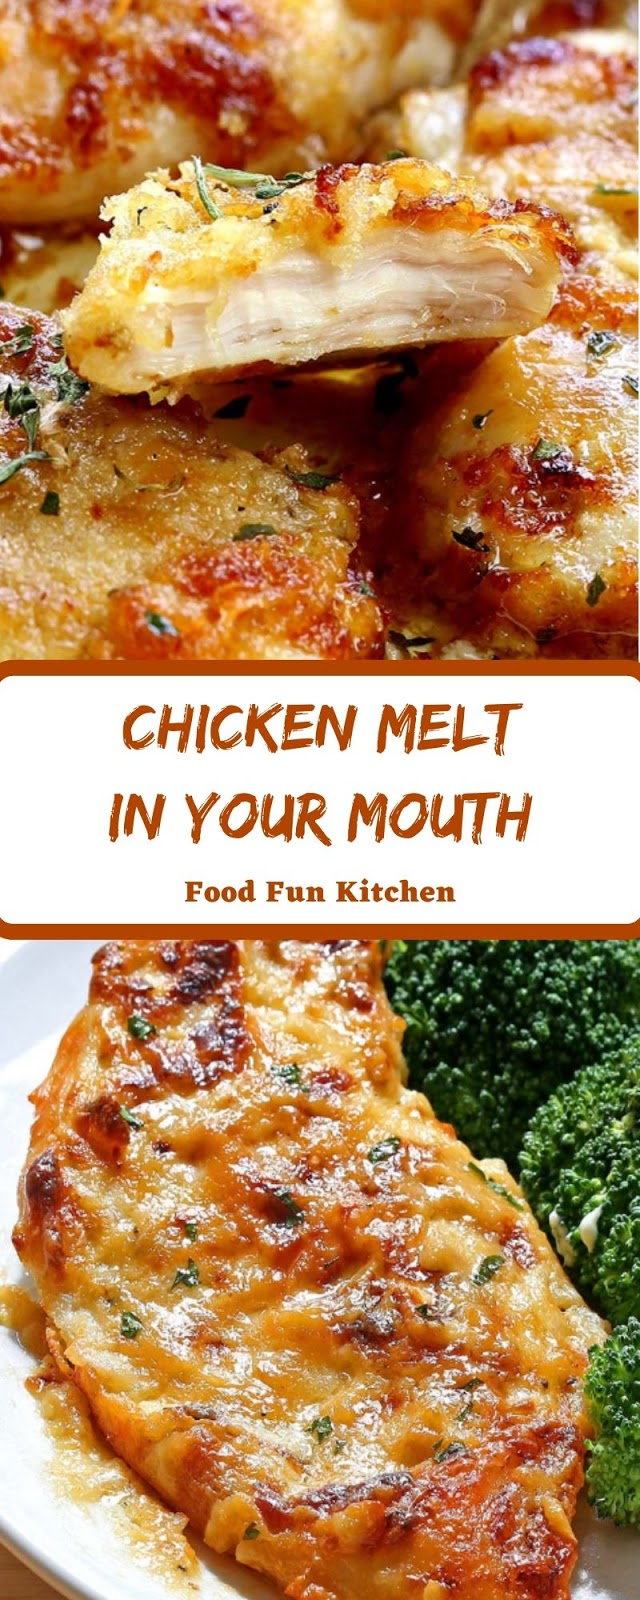 DELICIOUS CHICKEN MELT IN YOUR MOUTH